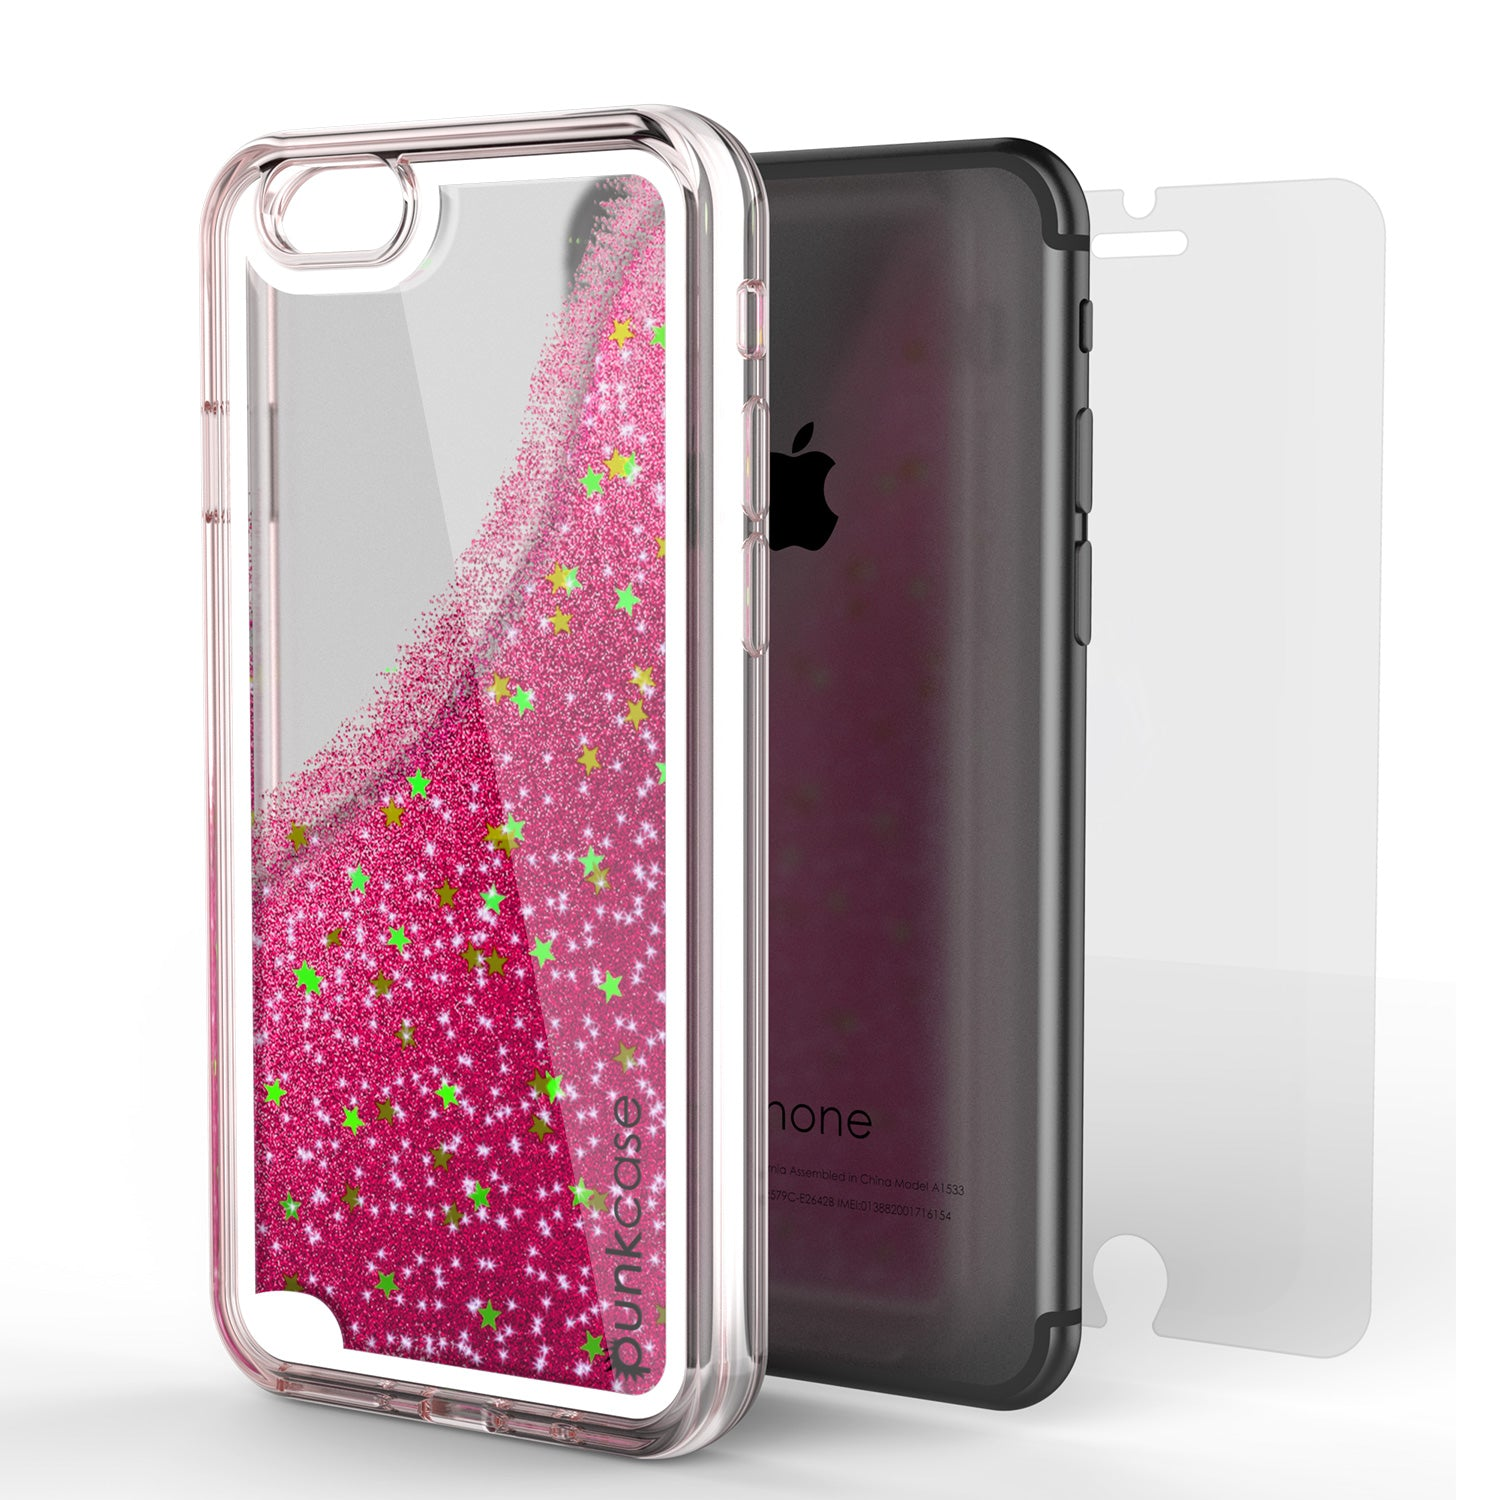 iPhone 7 Case, PunkCase LIQUID Pink Series, Protective Dual Layer Floating Glitter Cover